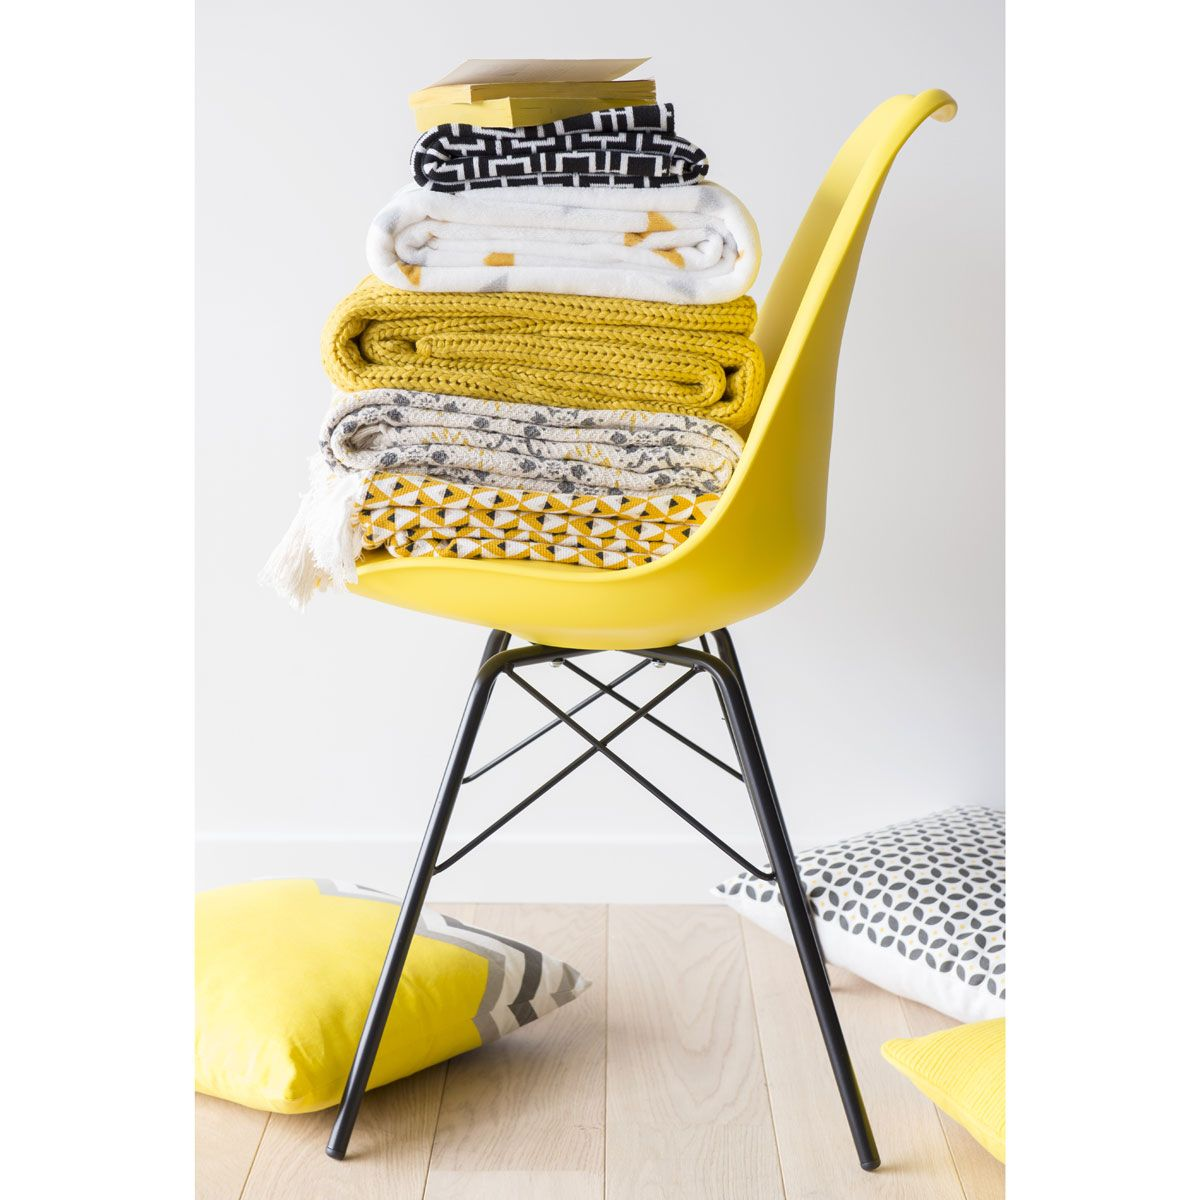 Fodera di cuscino in cotone gialla grigia 40 x 40 cm for Maison du monde yellow summer